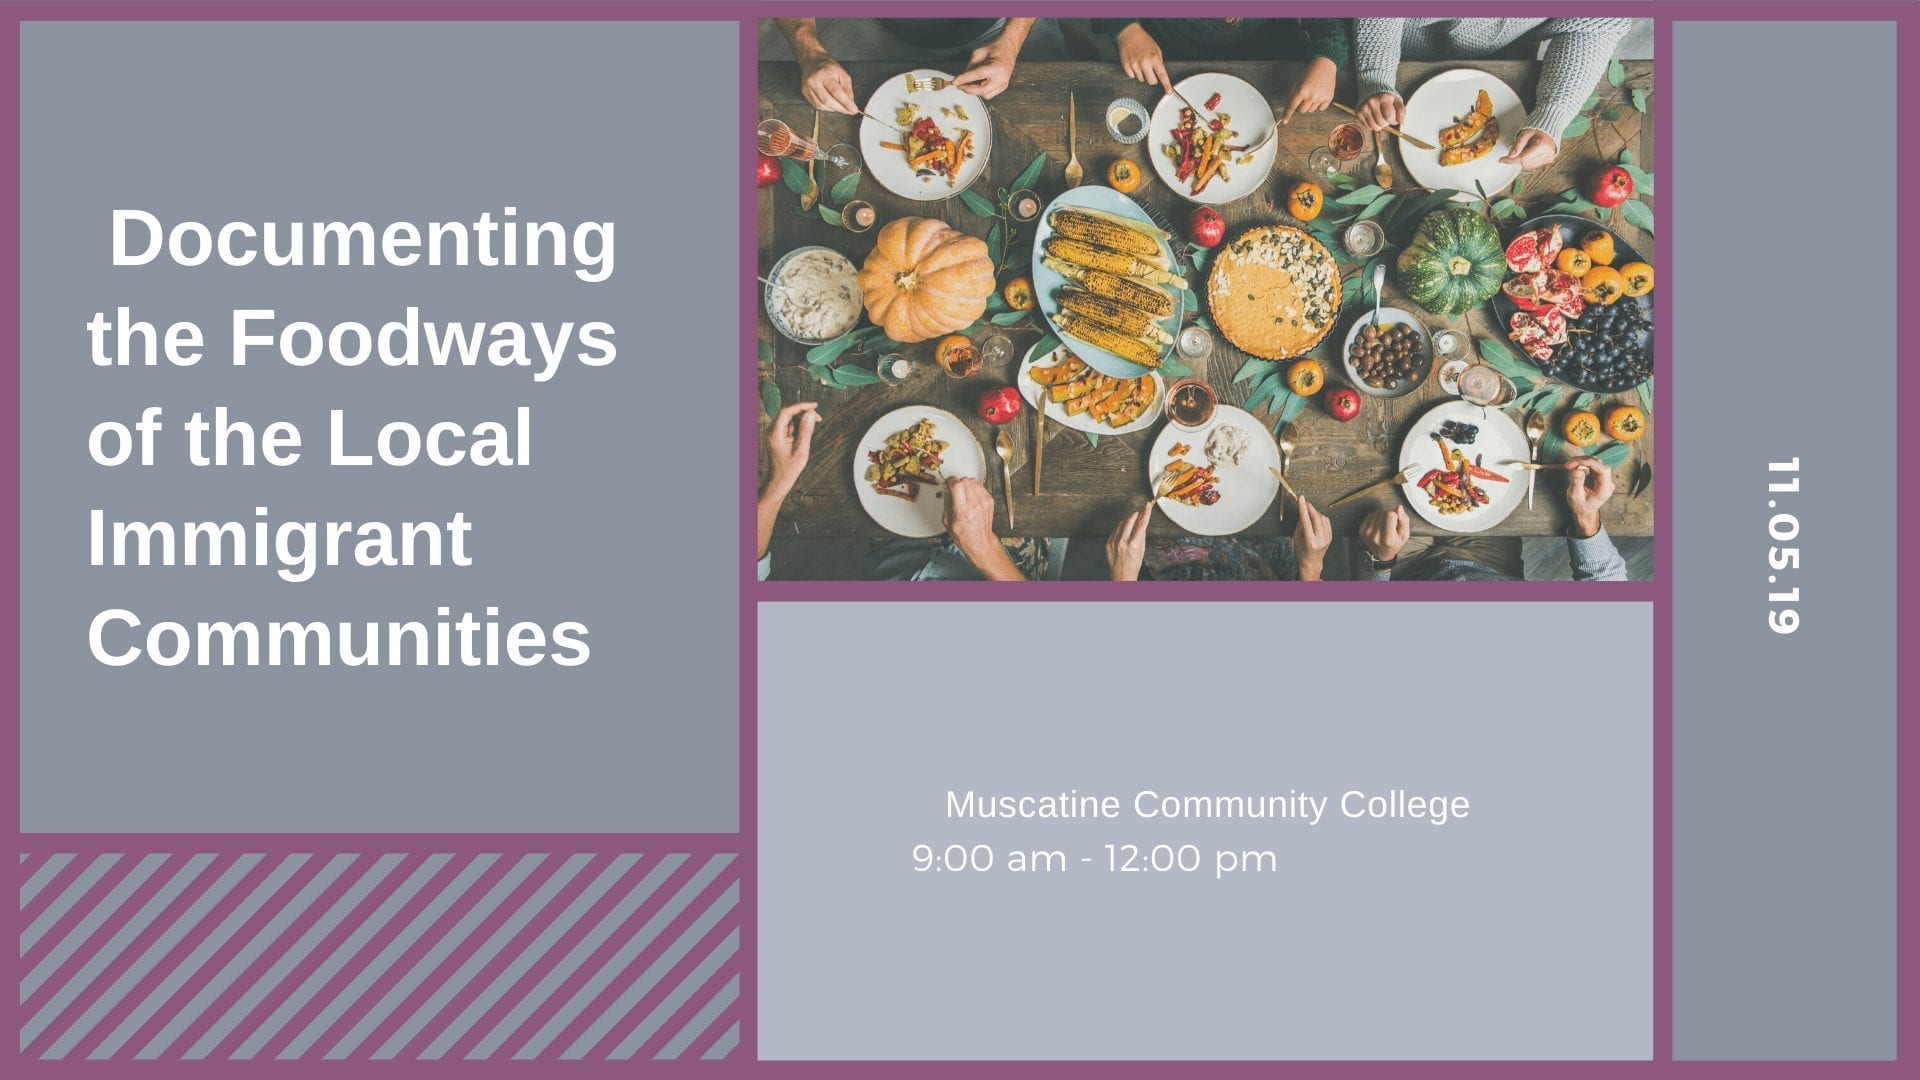 Documenting the Foodways of the Local Immigrant Communities